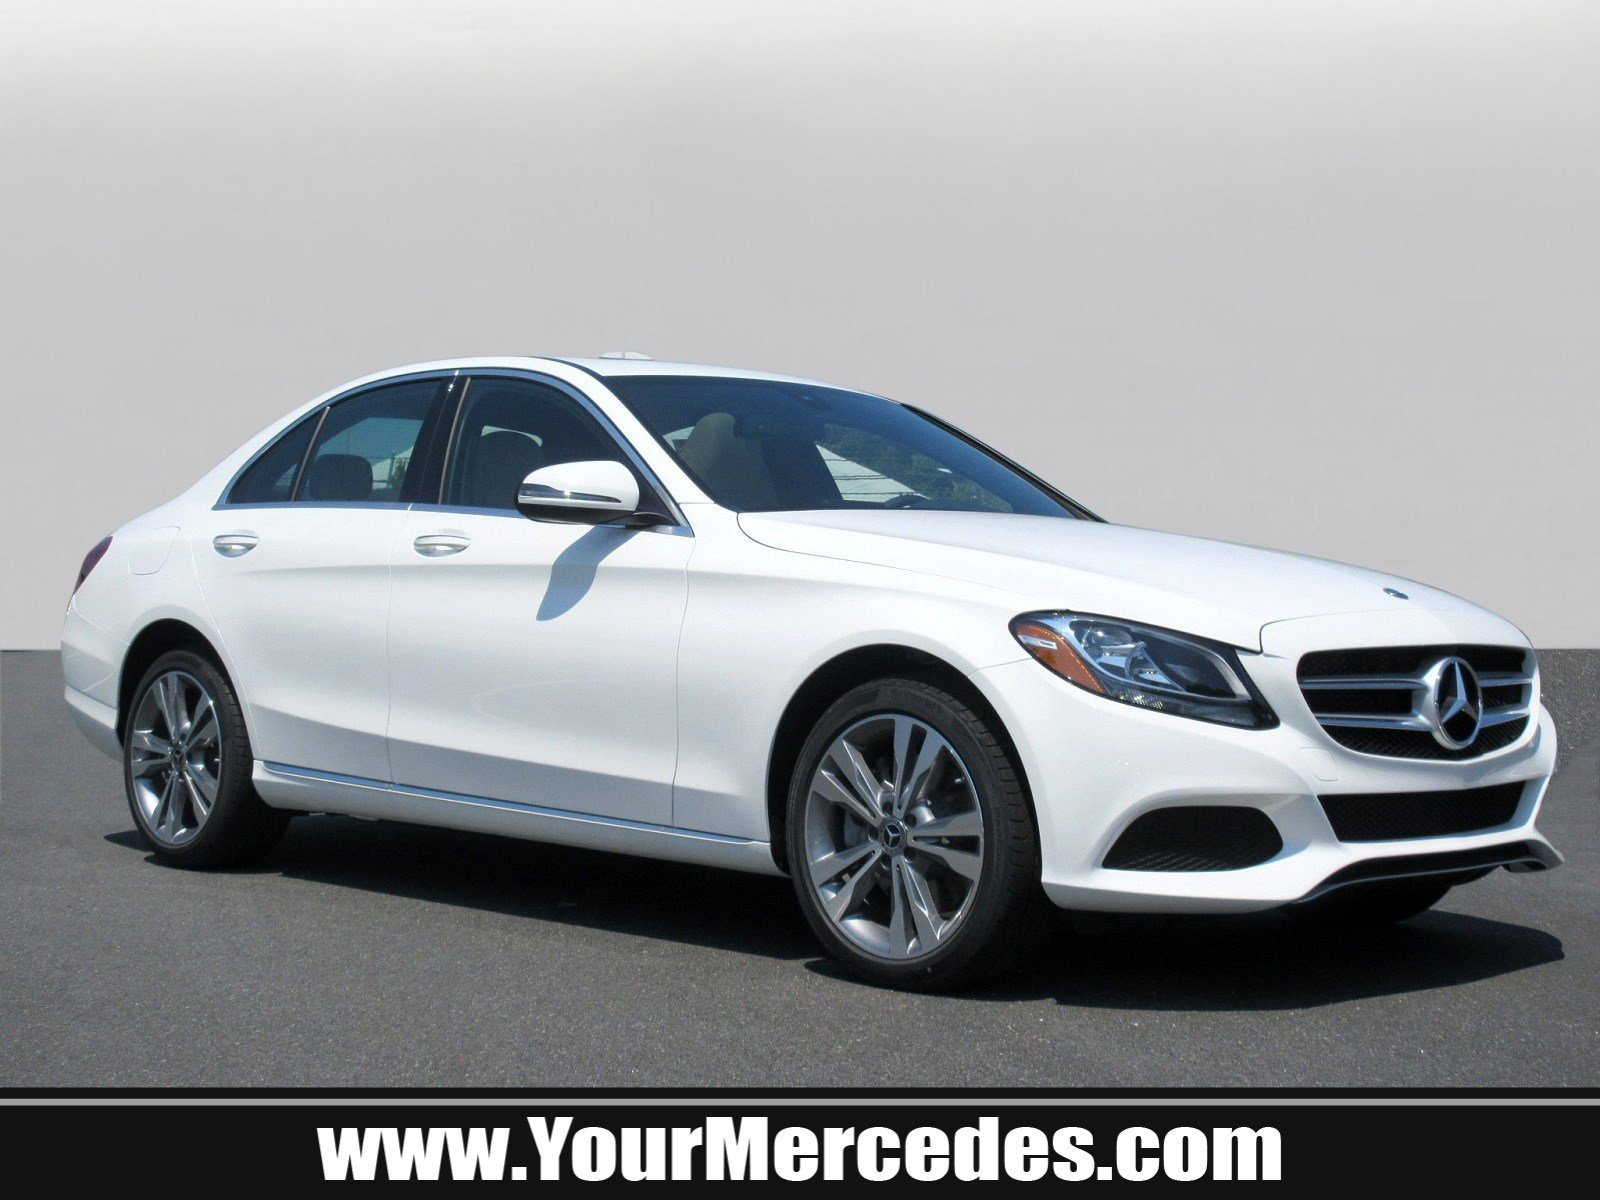 New 2018 Mercedes Benz C Class C 300 4dr Car in Egg Harbor Township